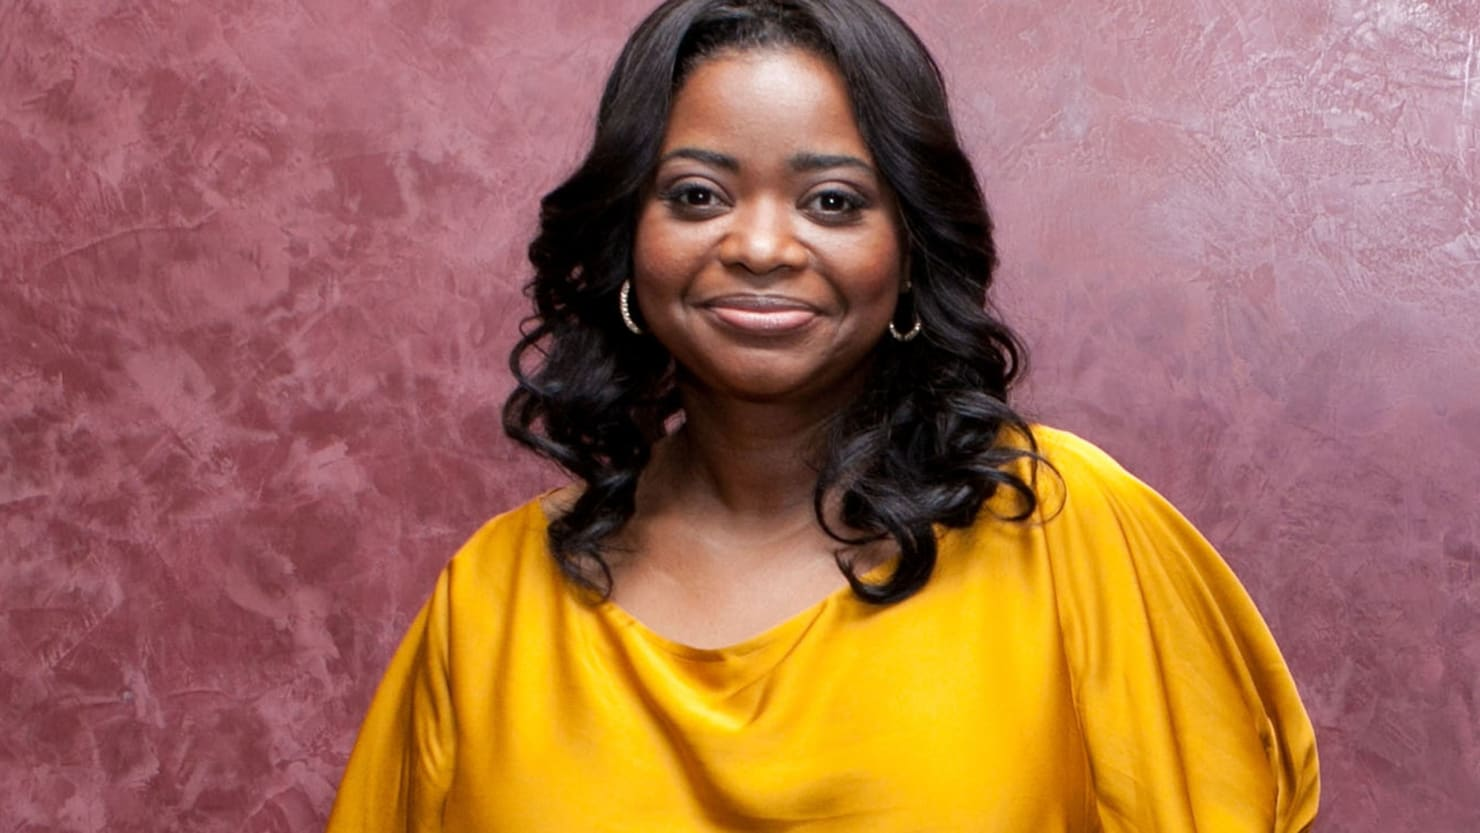 Octavia Spencer nude photos 2019